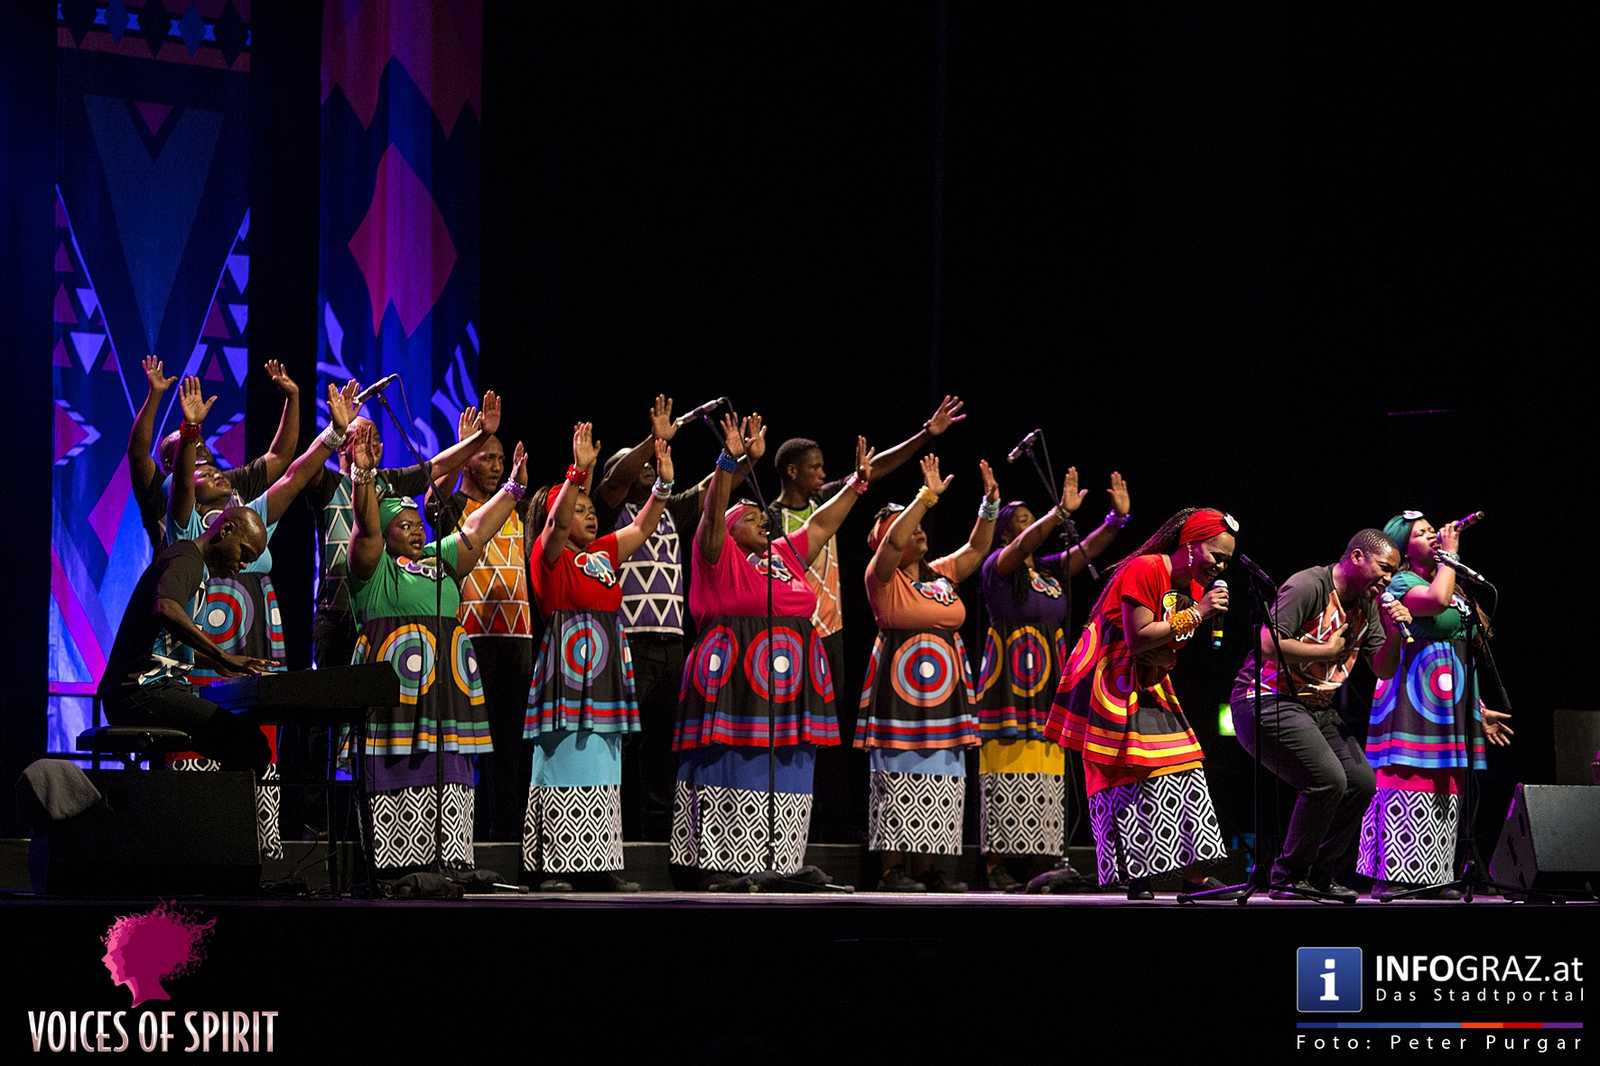 soweto gospel choir internationales chorfestival statdthalle graz voices of spirit eroeffnung festivals 2016 040